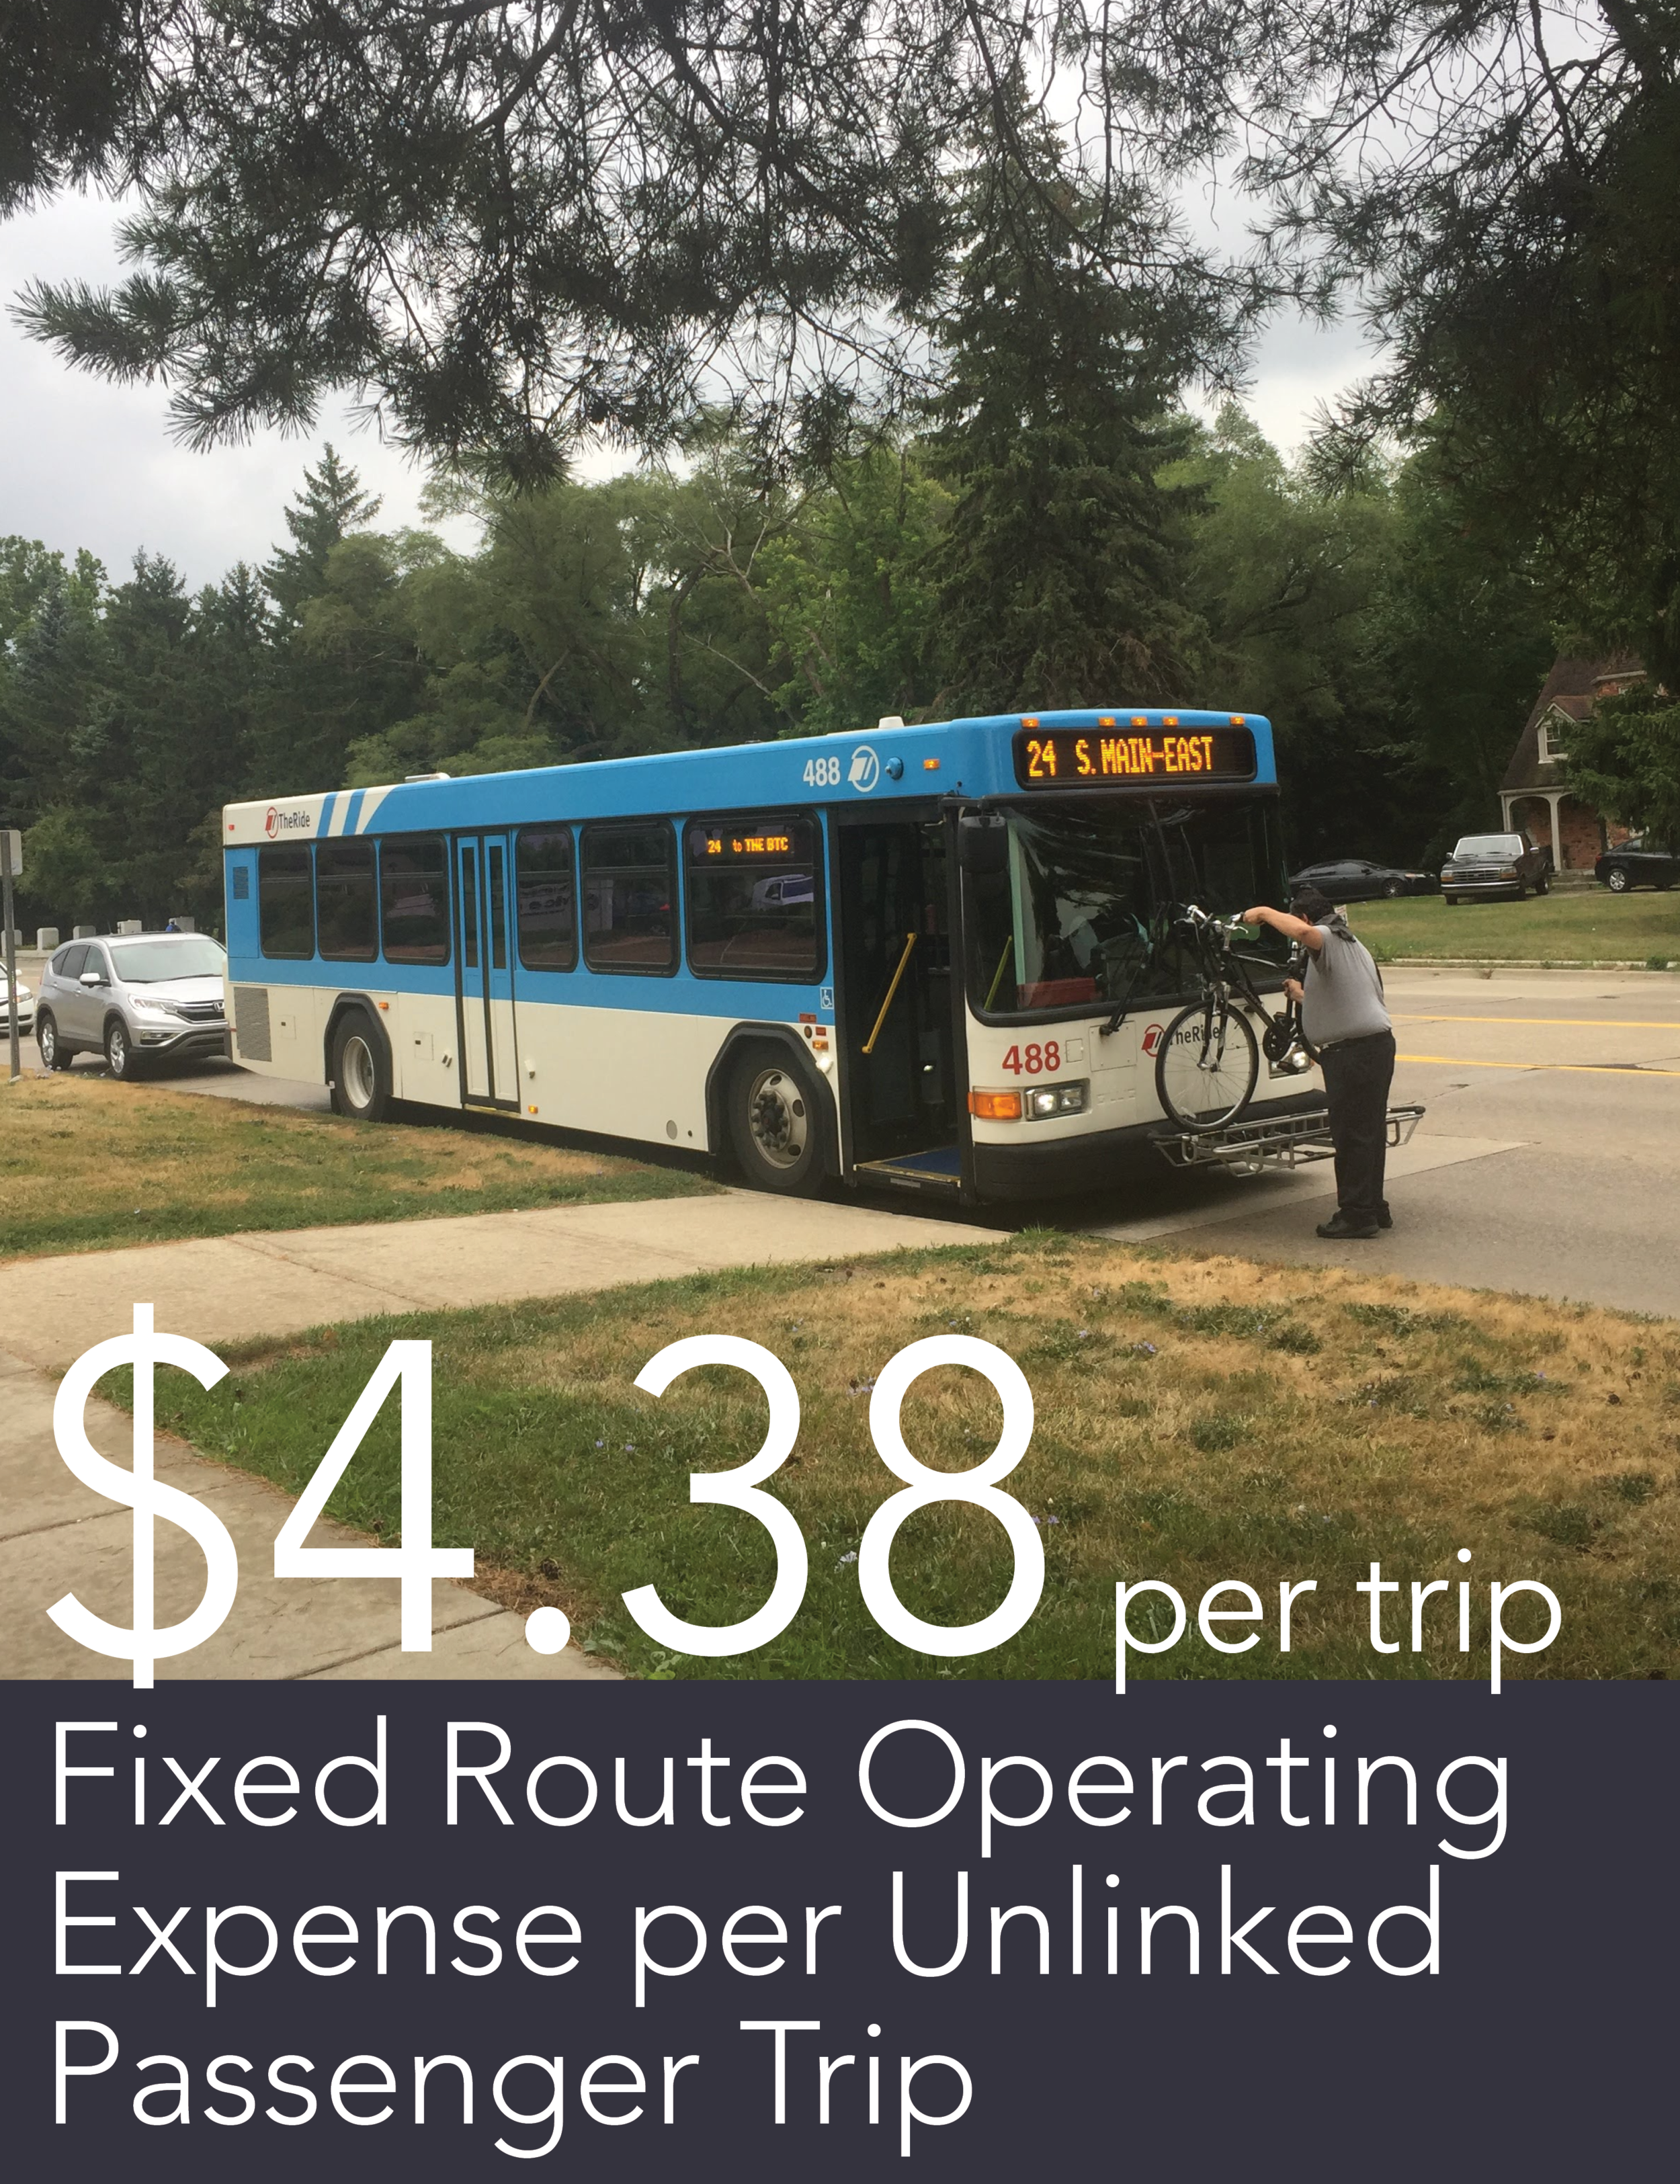 fix route operating expense per unlinked passenger trip.png